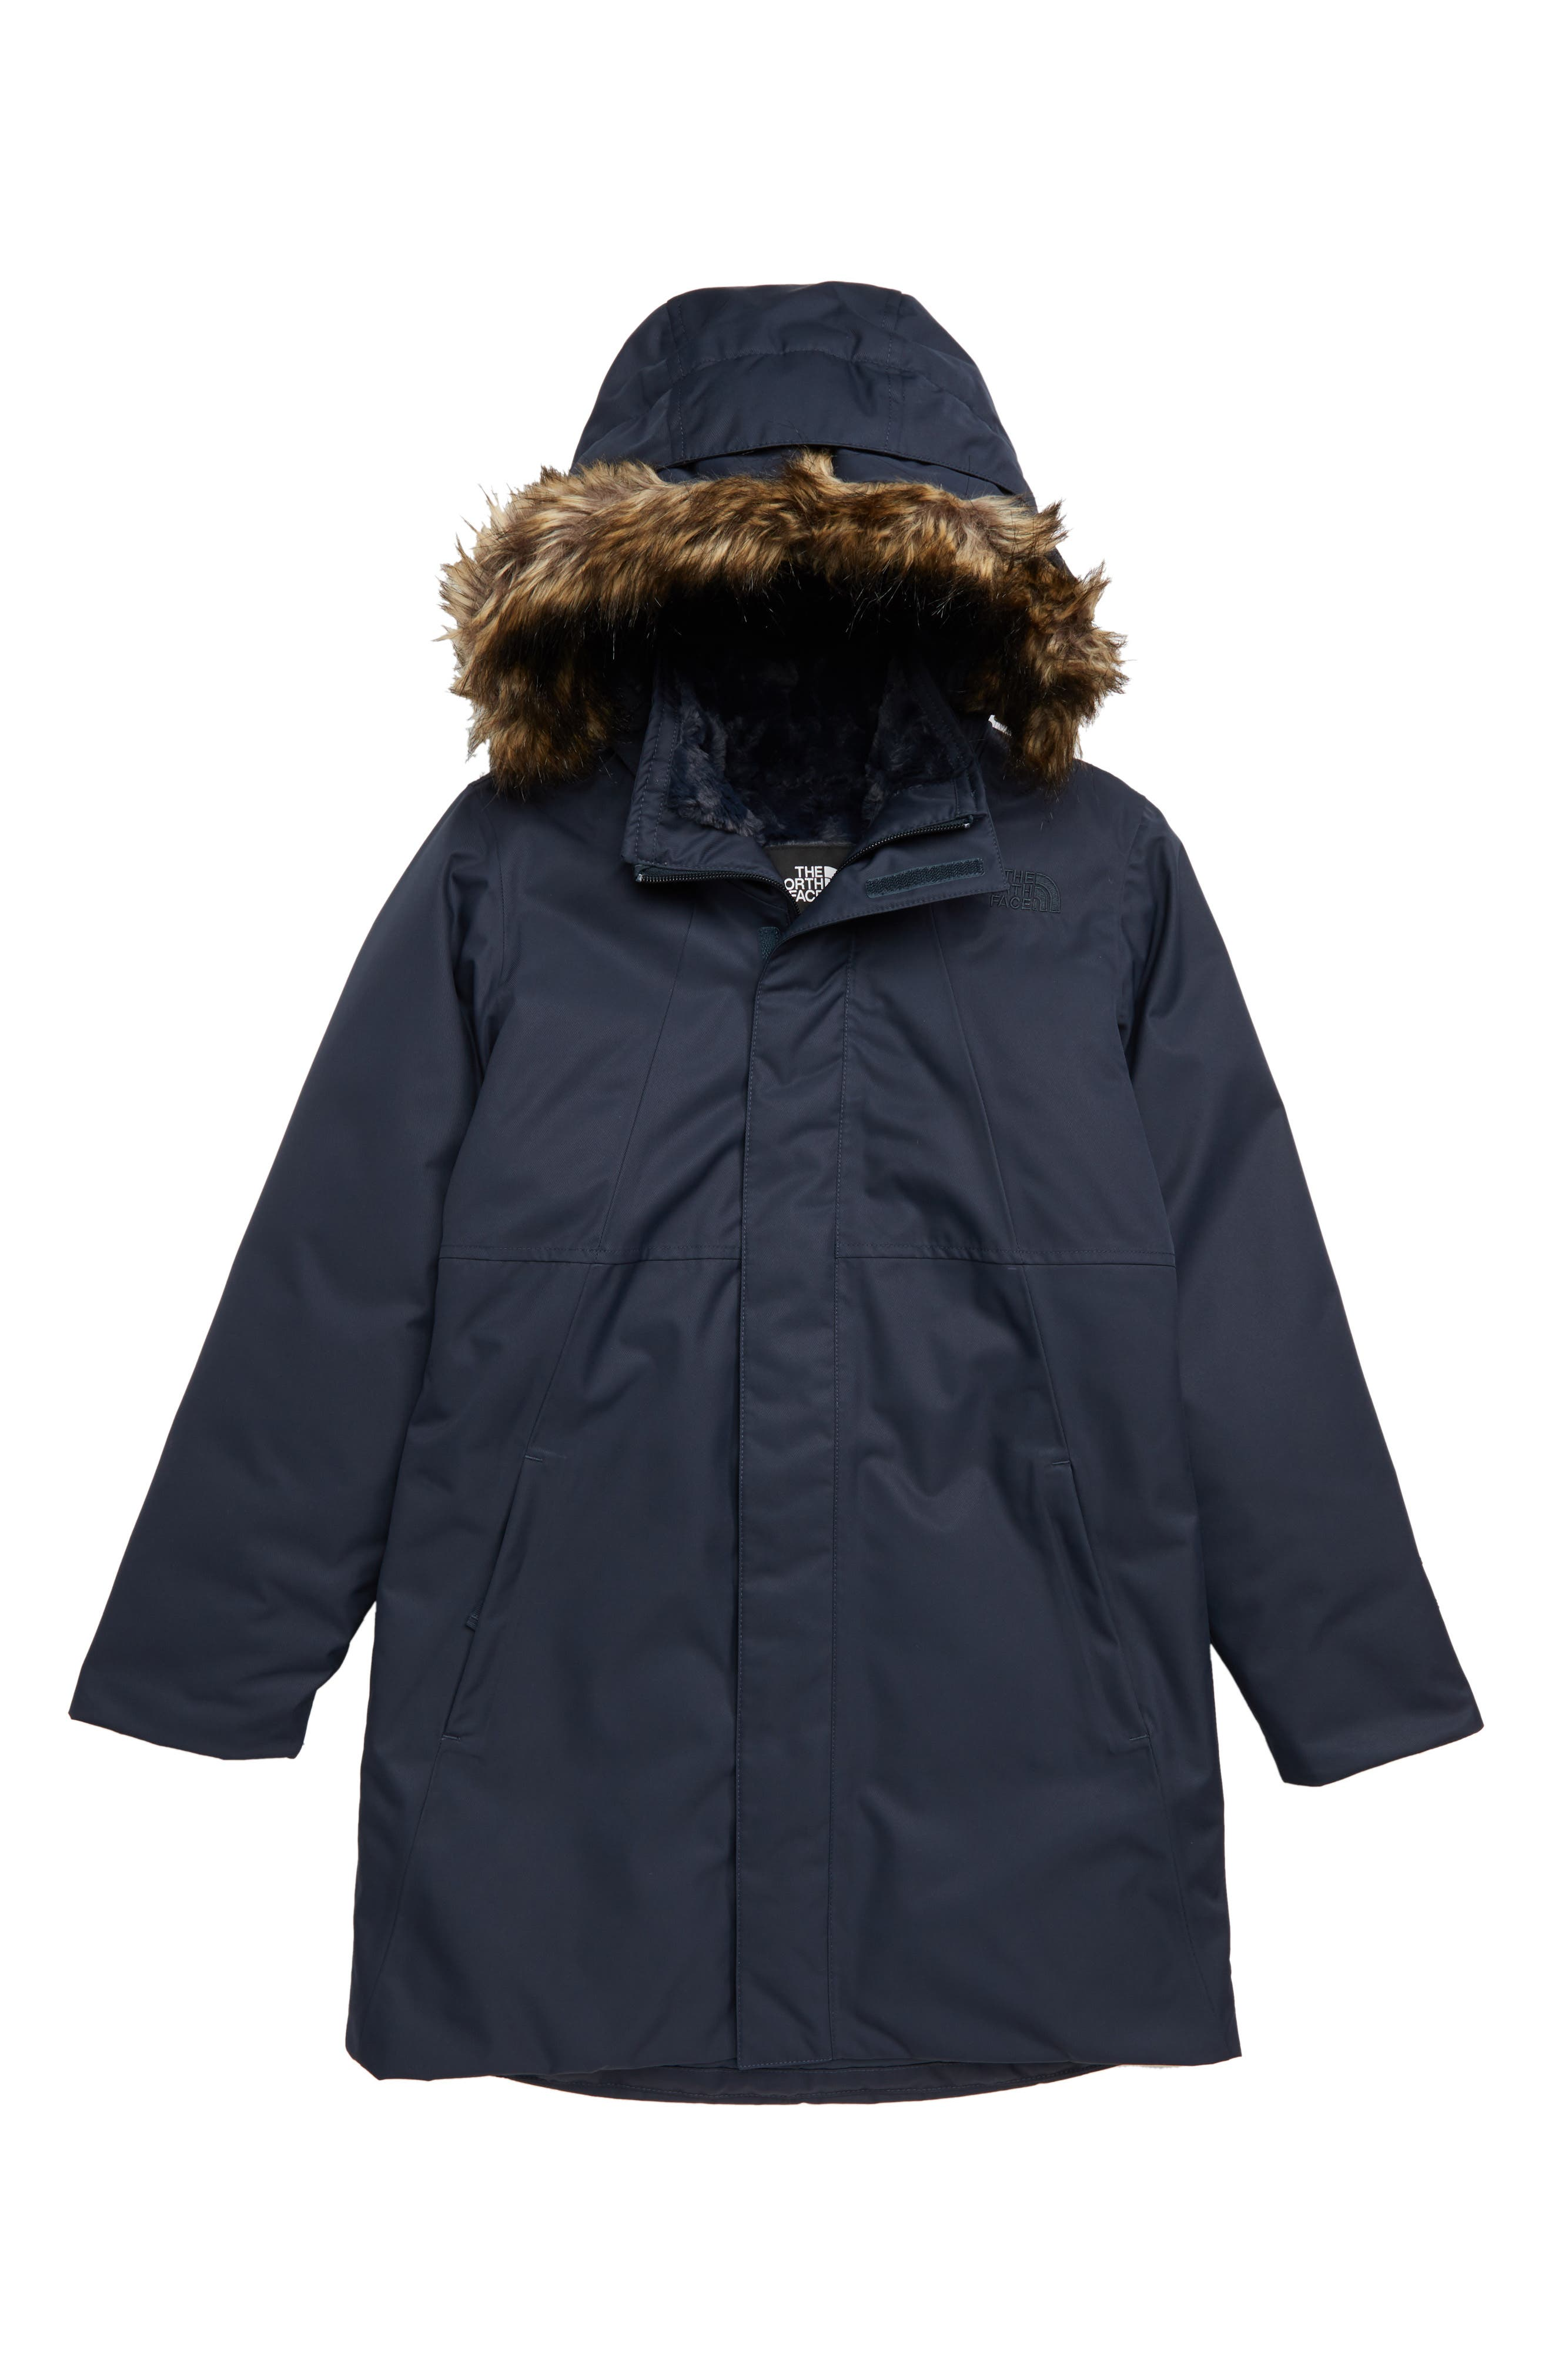 THE NORTH FACE Arctic Swirl Waterproof 550-Fill-Power Down Parka, Main, color, URBAN NAVY